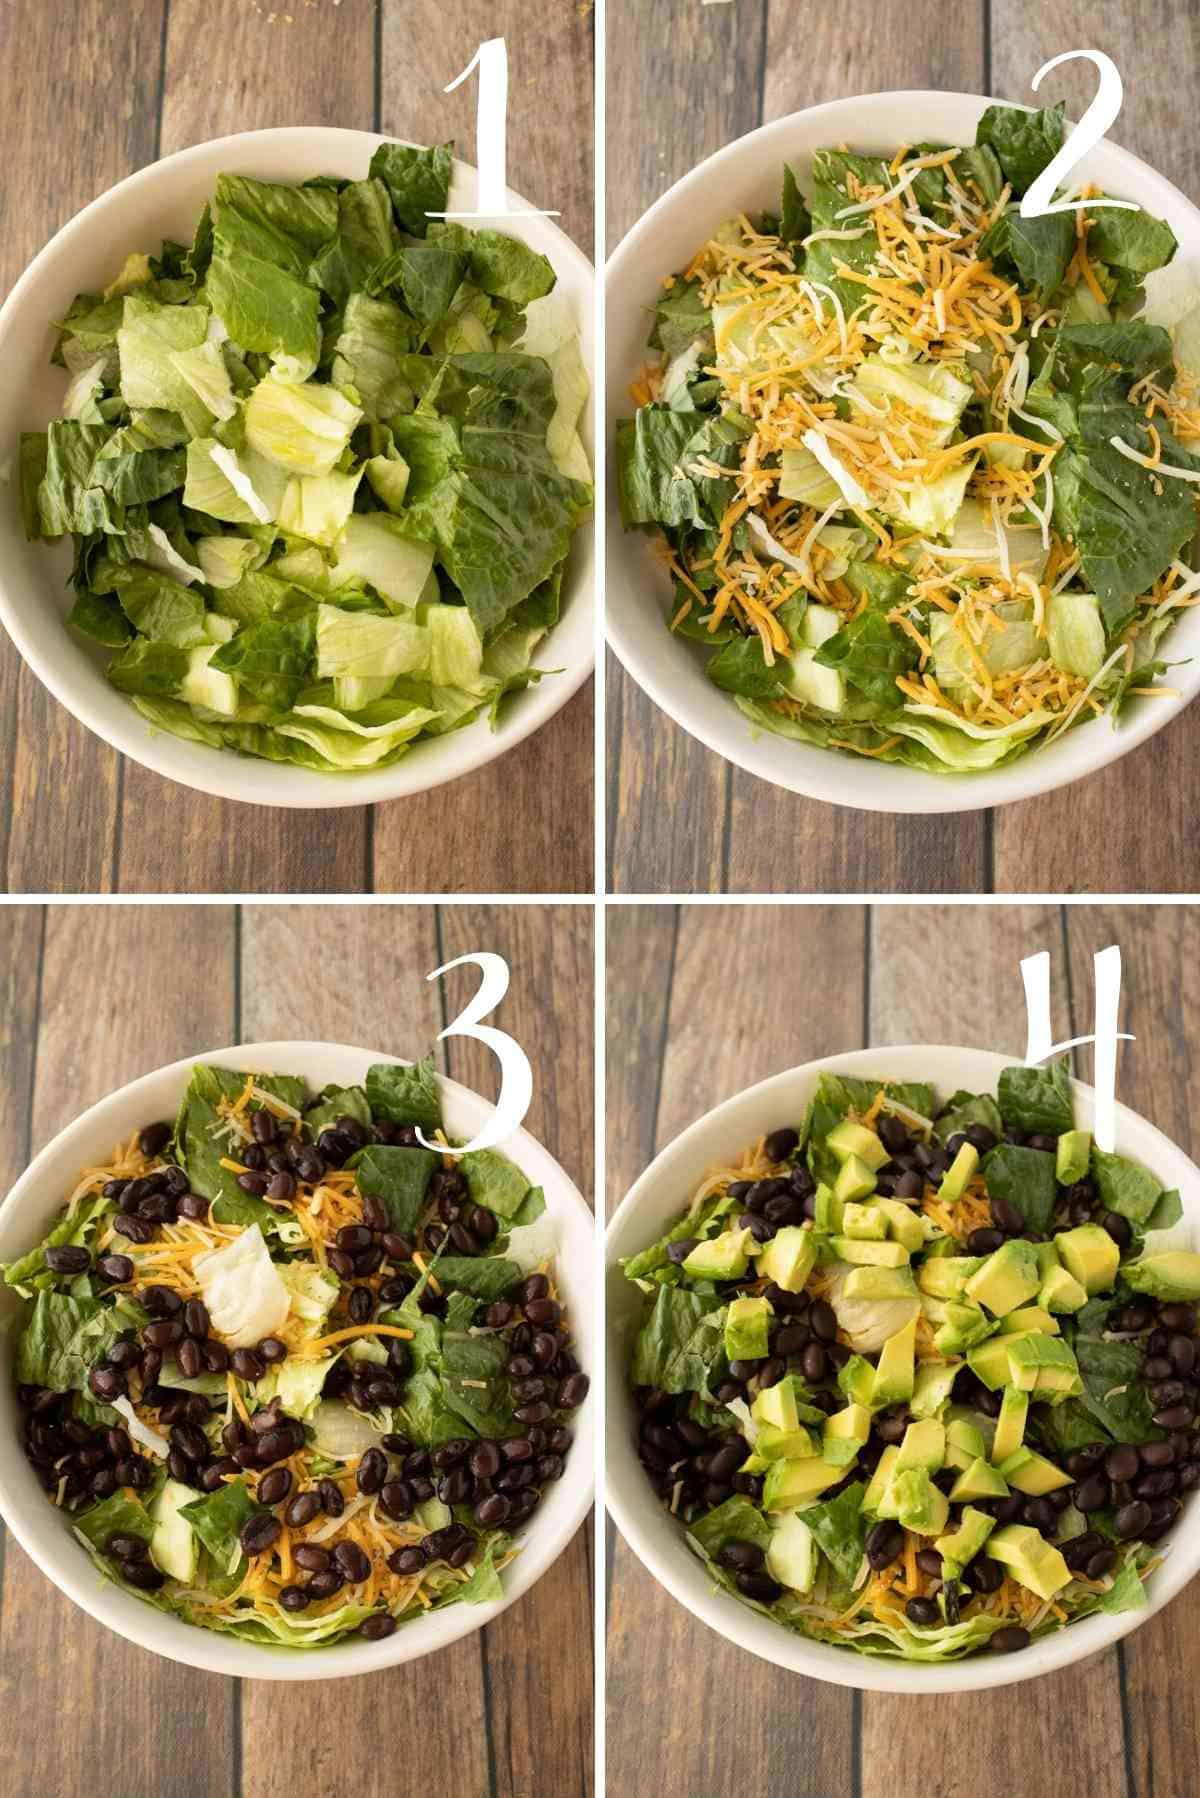 Iceberg and romaine lettuces topped with shredded cheese, black beans and avocado chunks.